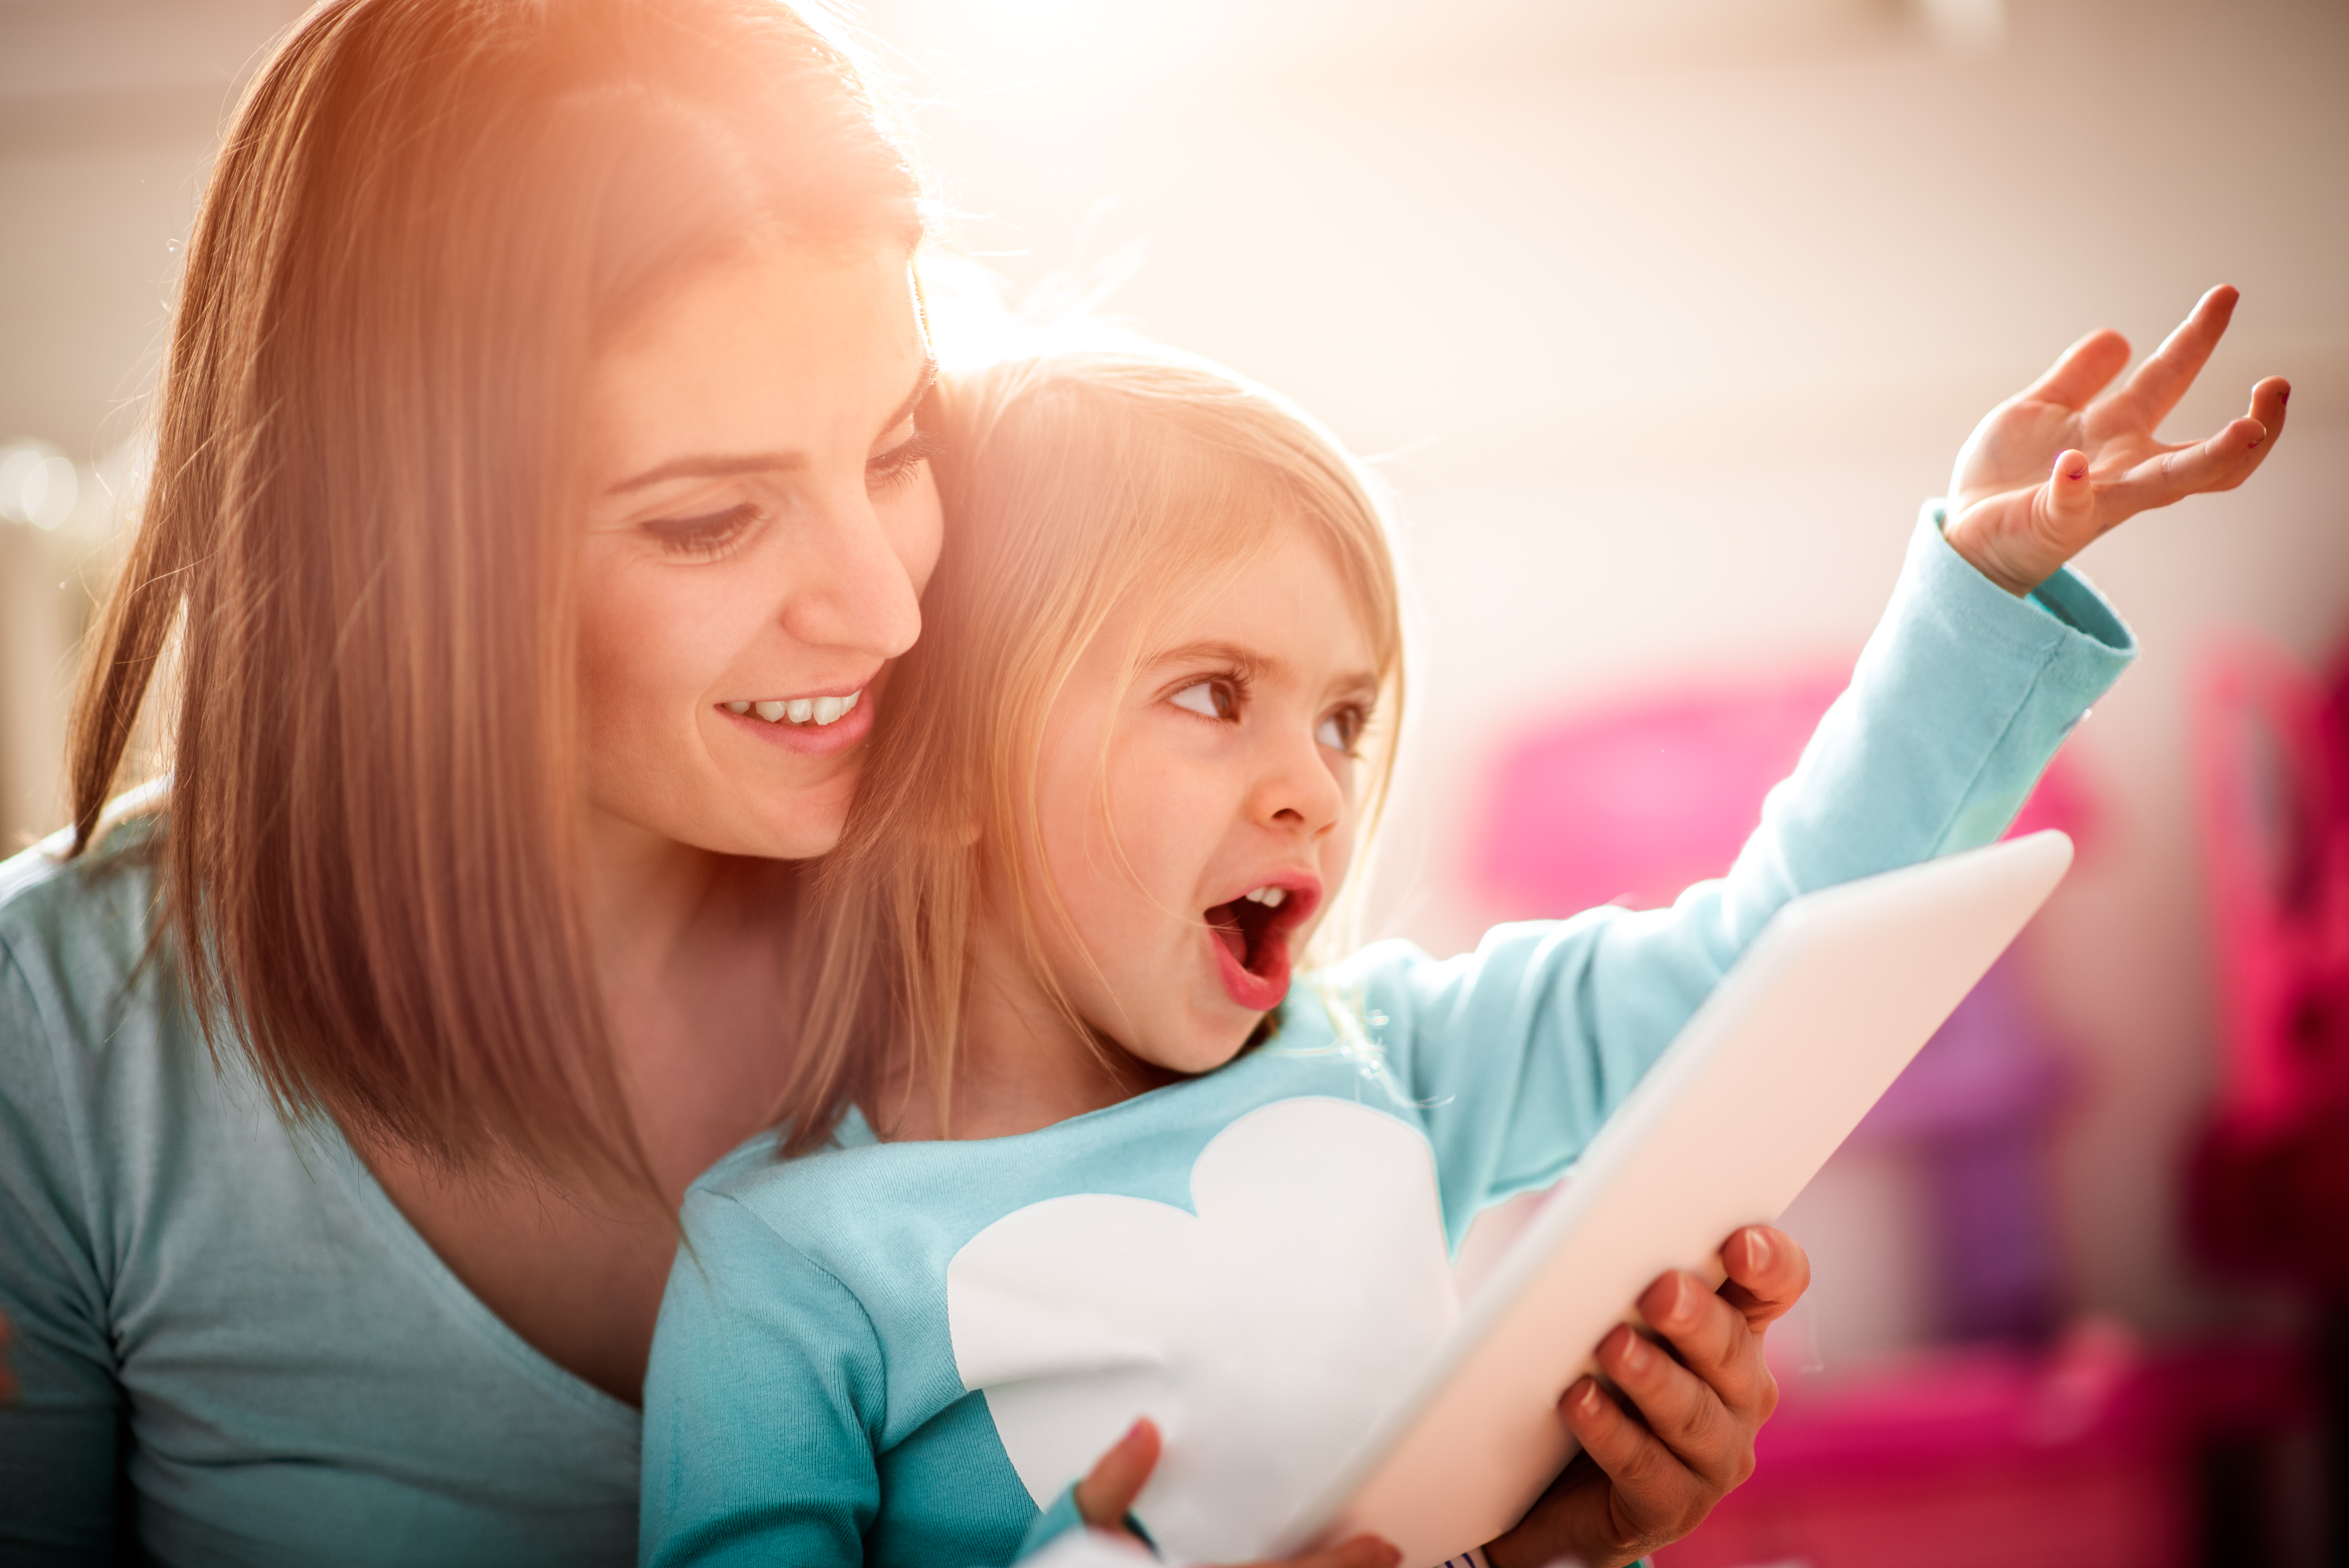 Mother is holding digital tablet and showing some multimedia content to her little daughter who is having a lot of fun. Bright light is coming through the window in the background.